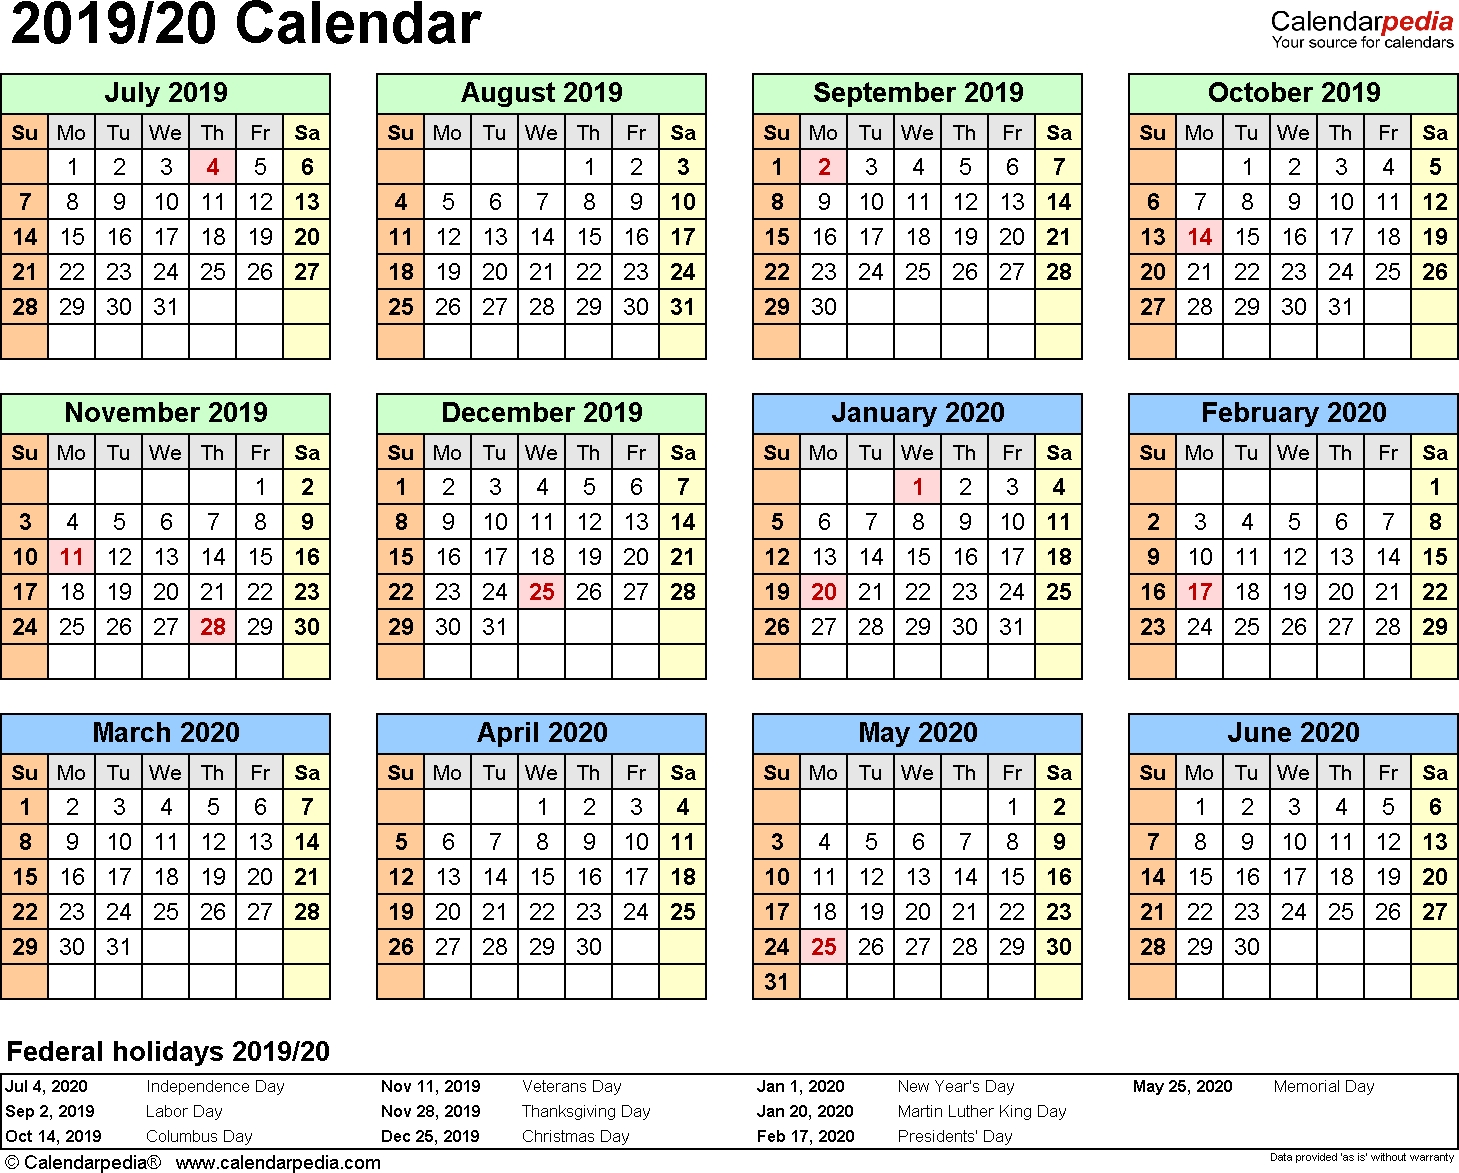 Split Year Calendar 2019/20 (July To June) - Word Templates pertaining to Fillable 2019-2020 Calendar